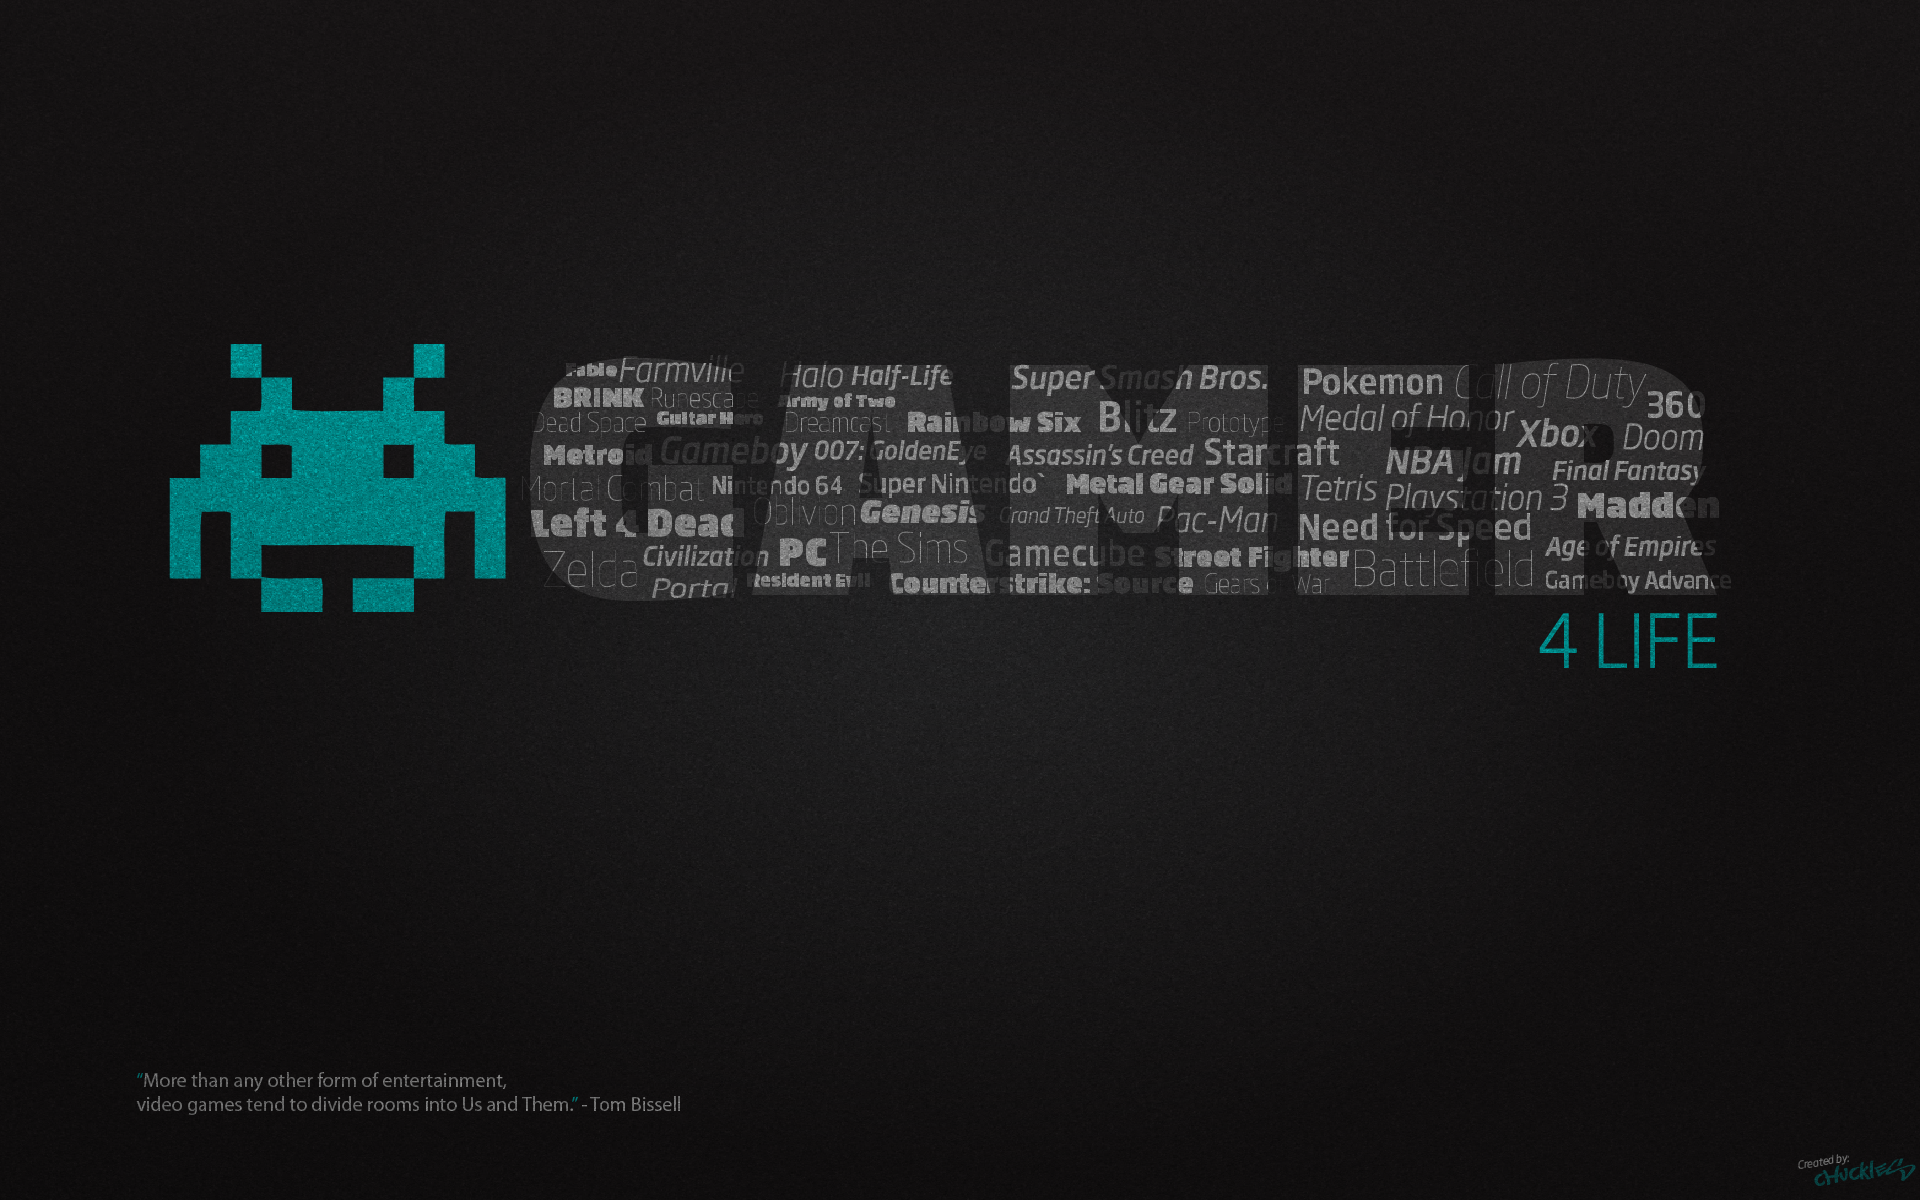 gamer for life desktop wallpaper 1920x1200 by chucklesmedia